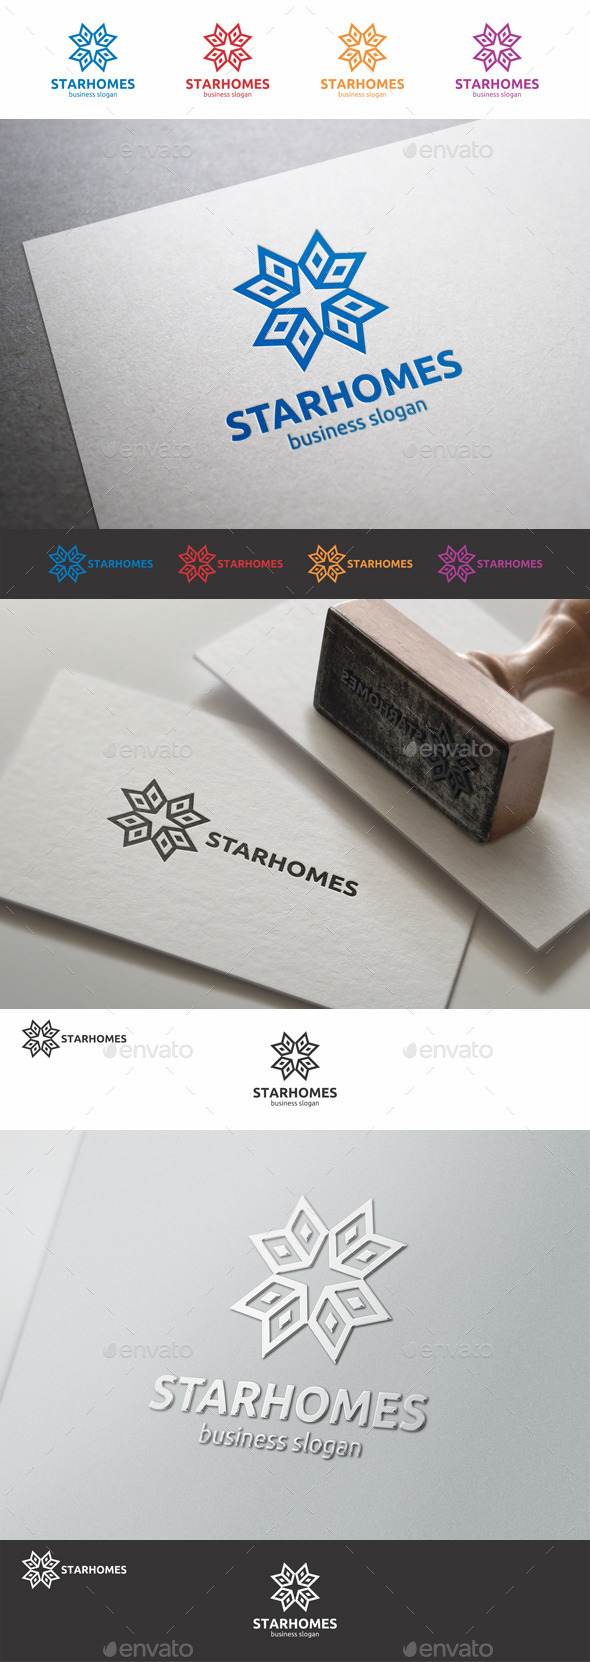 GraphicRiver Star Homes Construction Logo 9155012